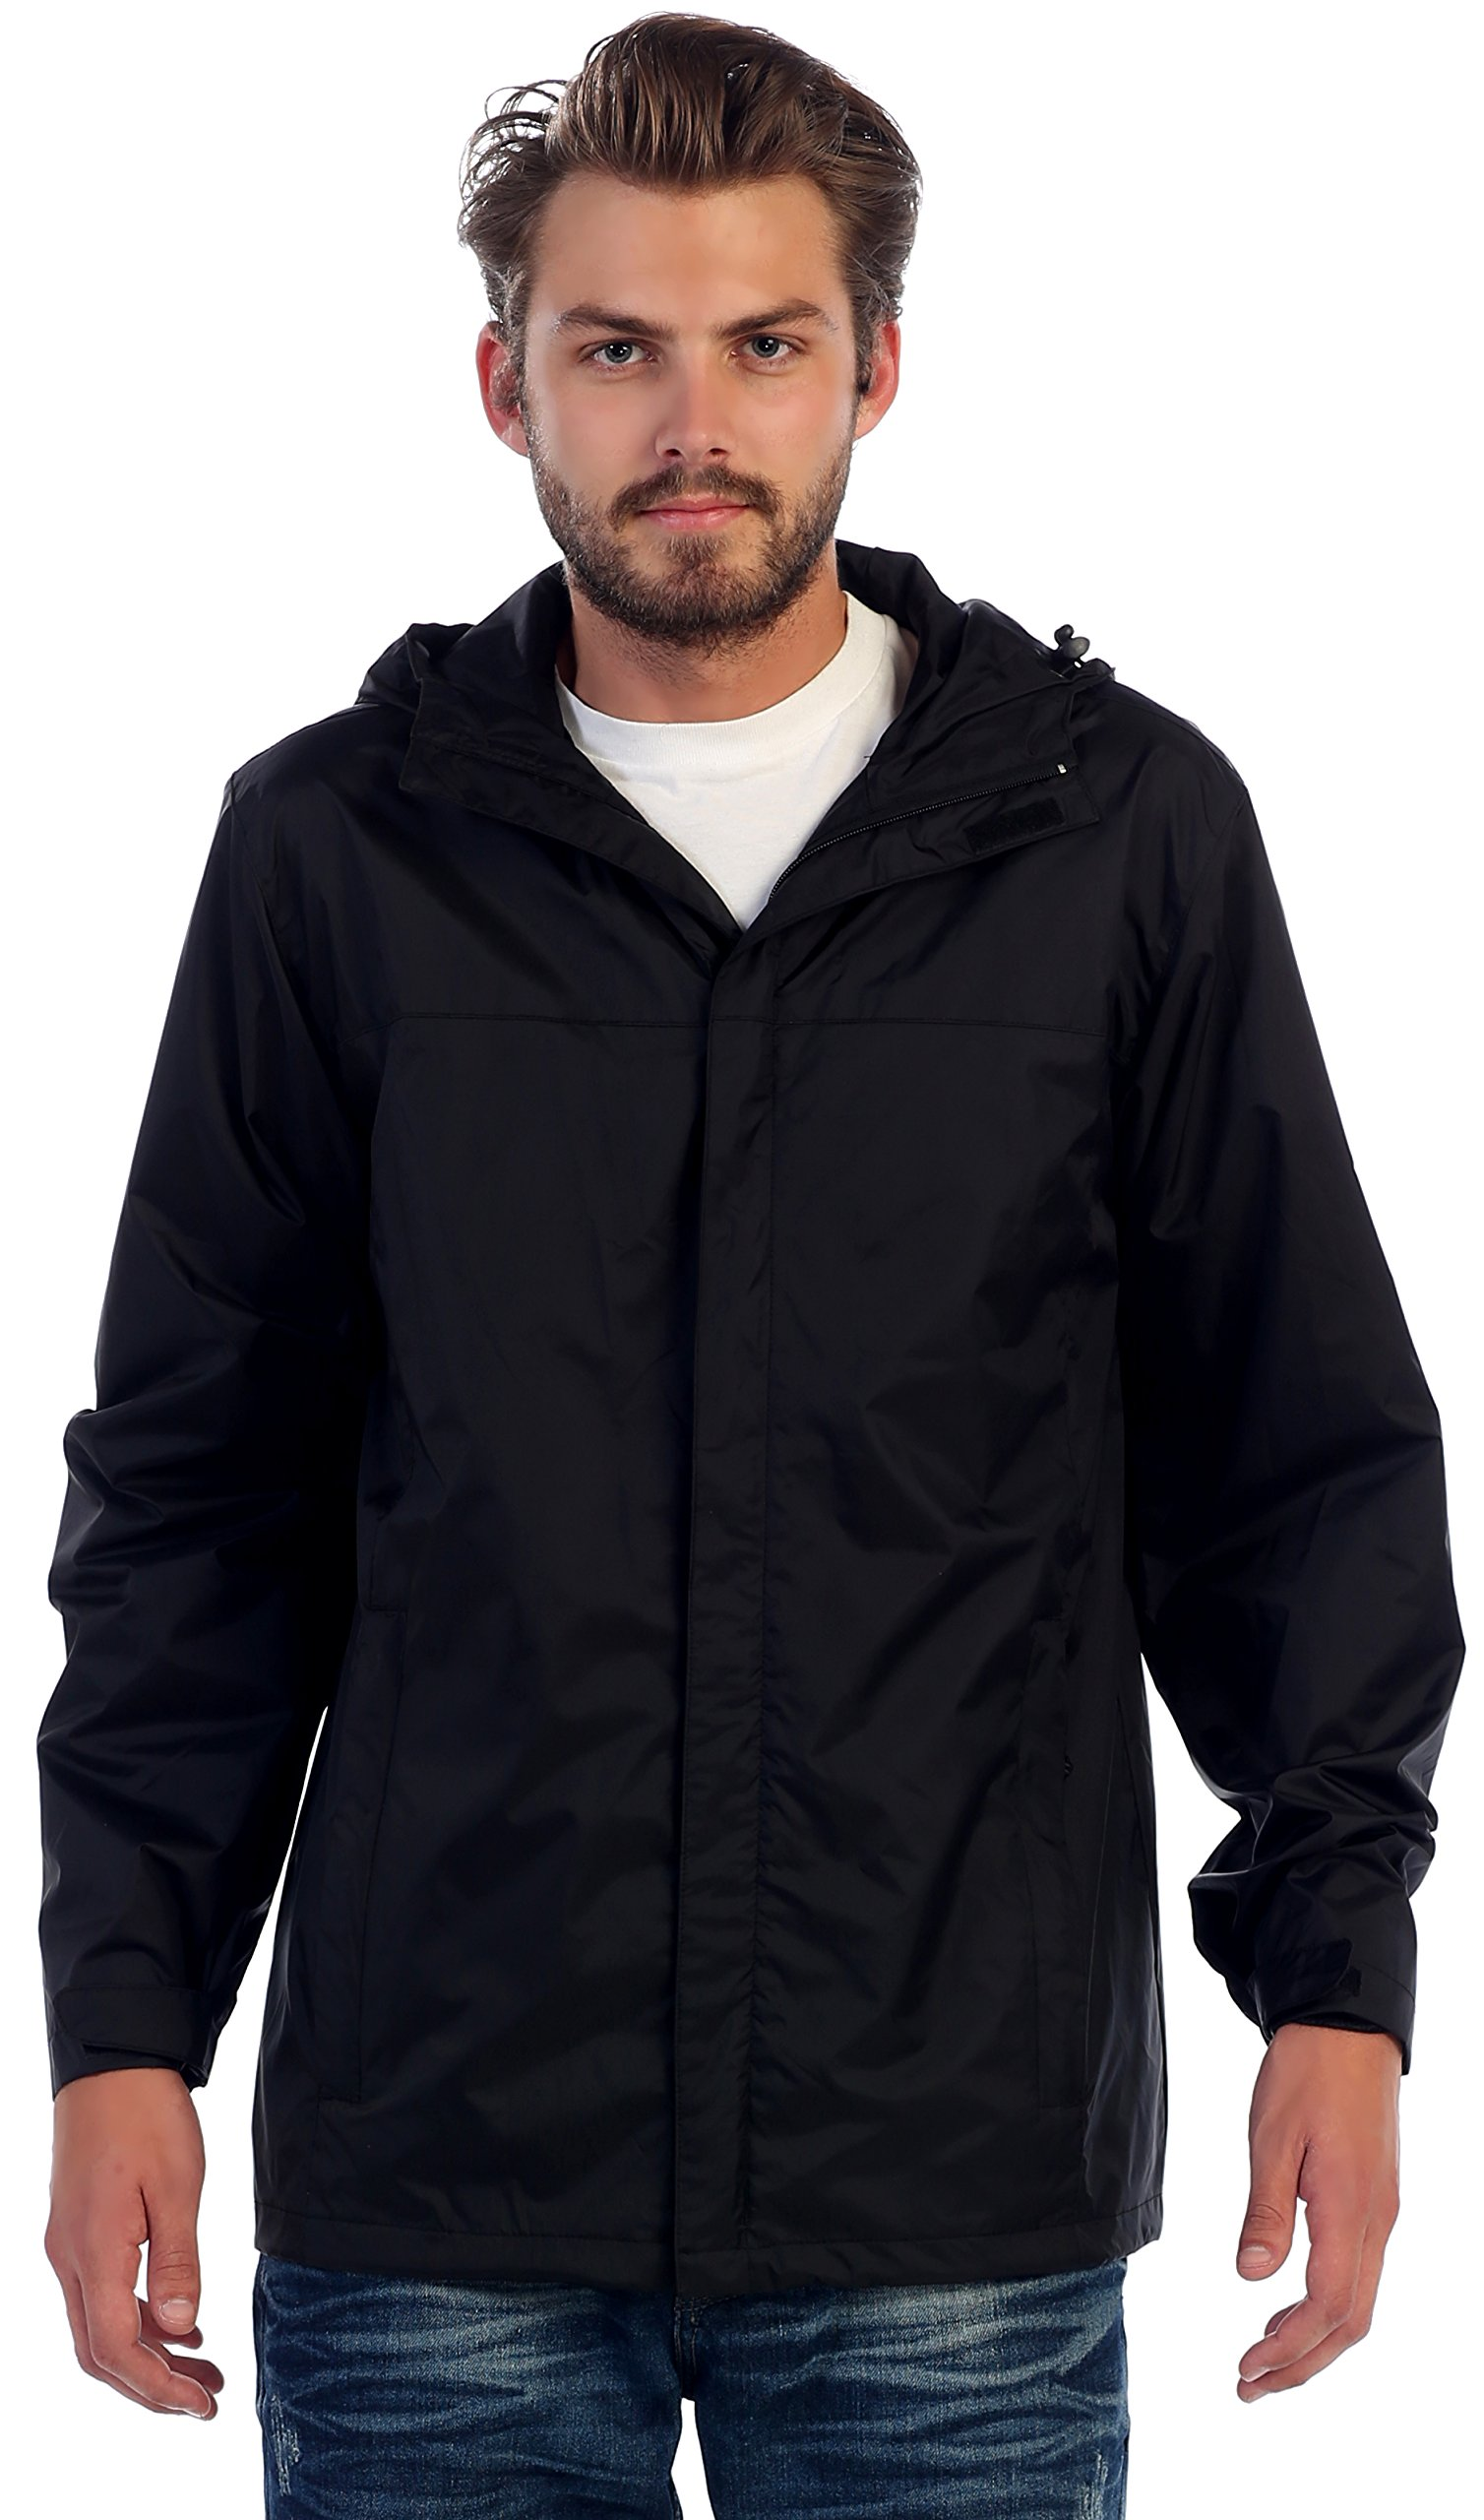 Gioberti Men's Waterproof Rain Jacket, Black, XXL by Gioberti